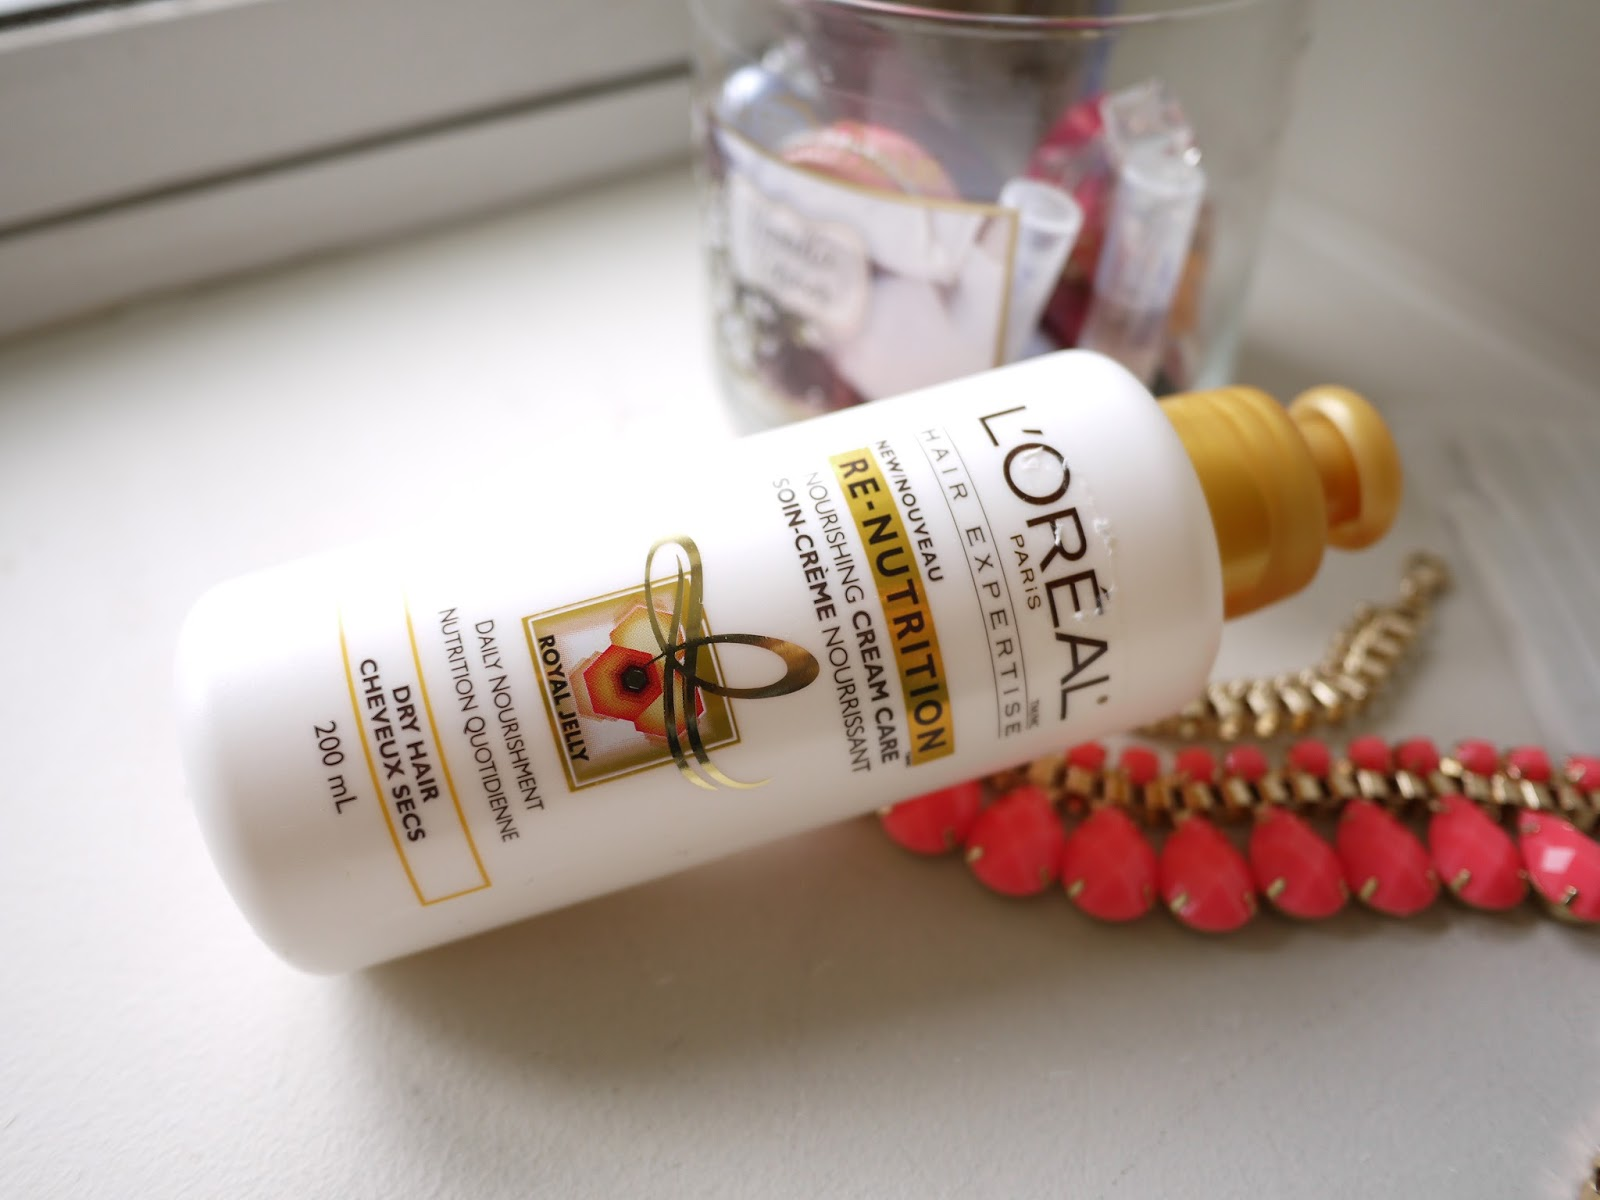 L'Oreal Re-Nutirtion Nourishing Cream Care Royal Jelly review